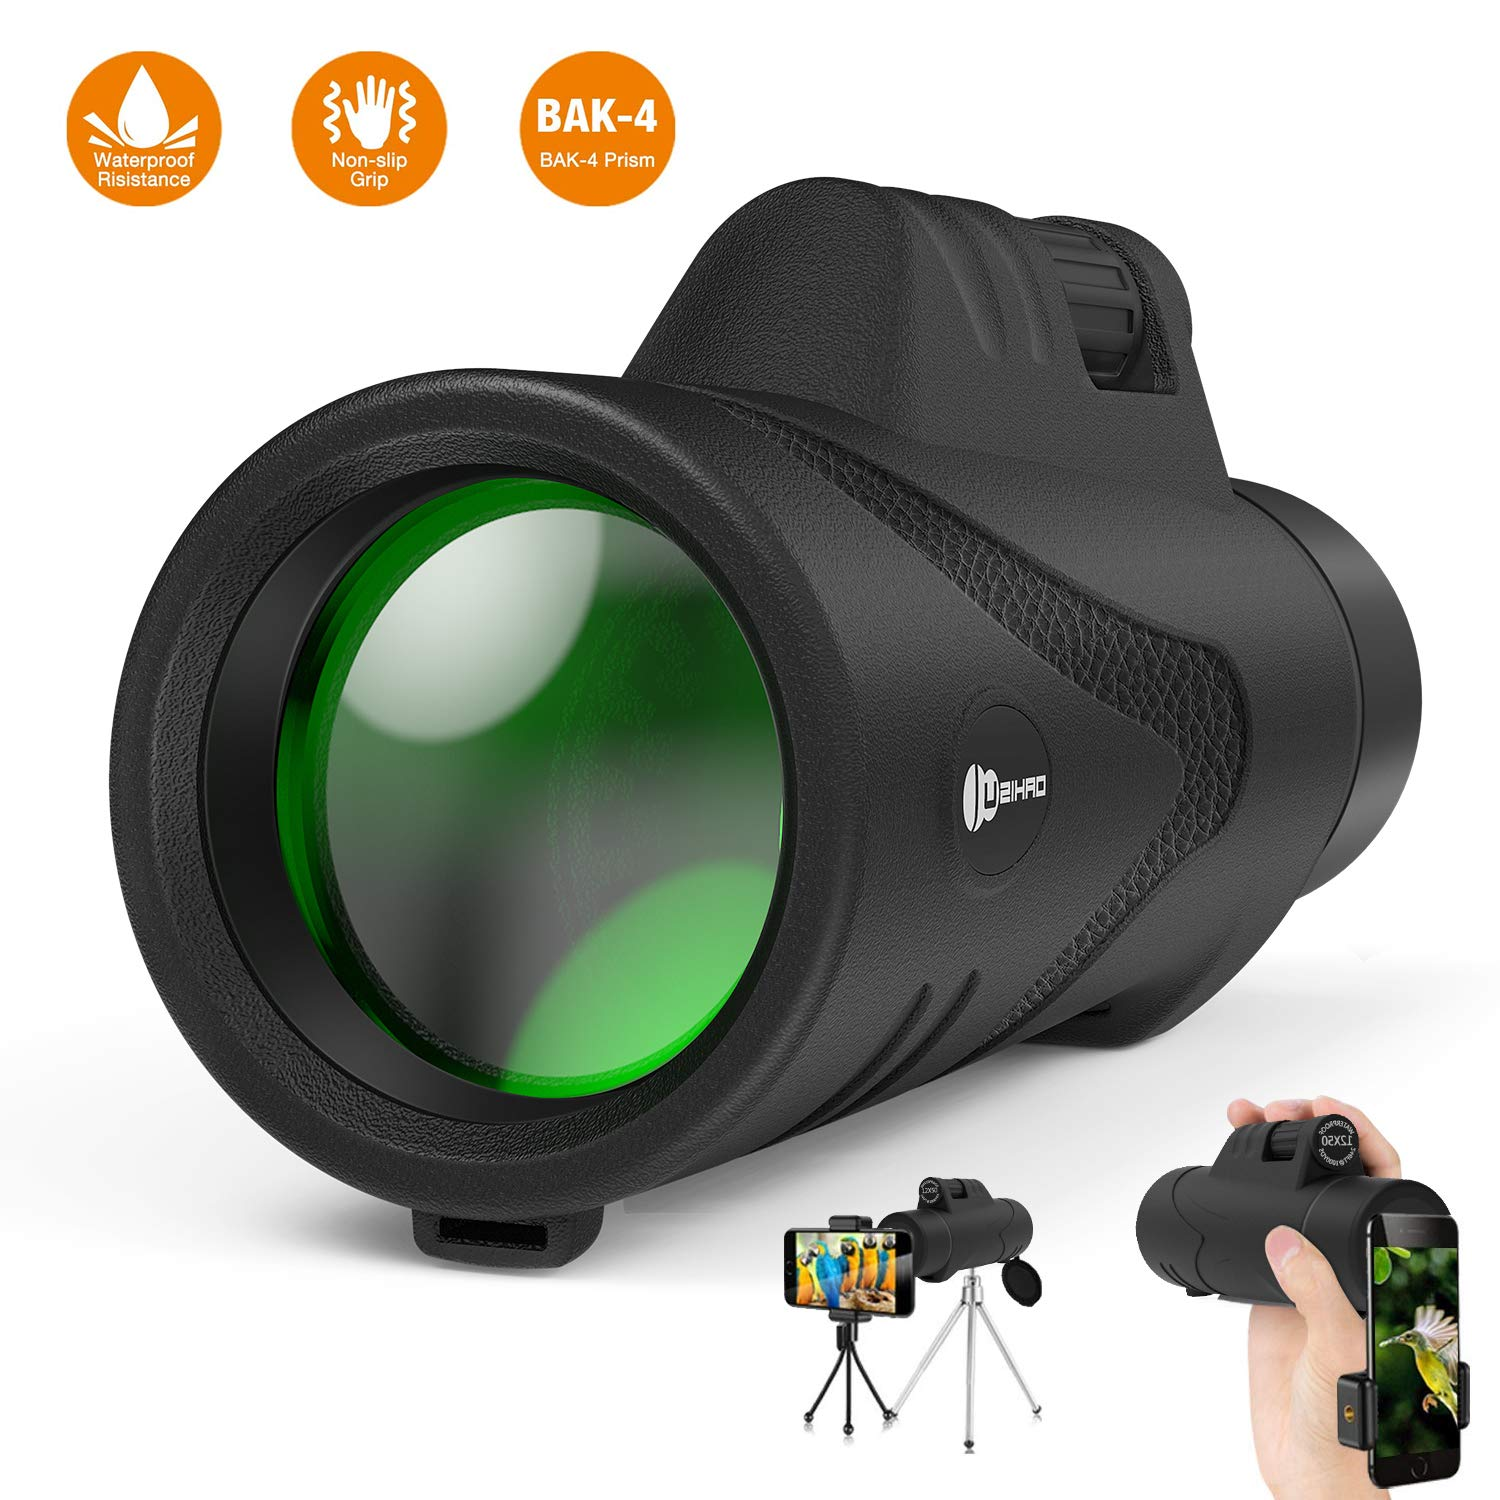 Monocular Telescope,12X50 JUZIHAO High Powered Waterproof- Shockproof HD BAK4 Prism,Monocular with Smartphone Holder and Tripod for Bird Watching Travelling Hunting Camping Wildlife by JUZIHAO